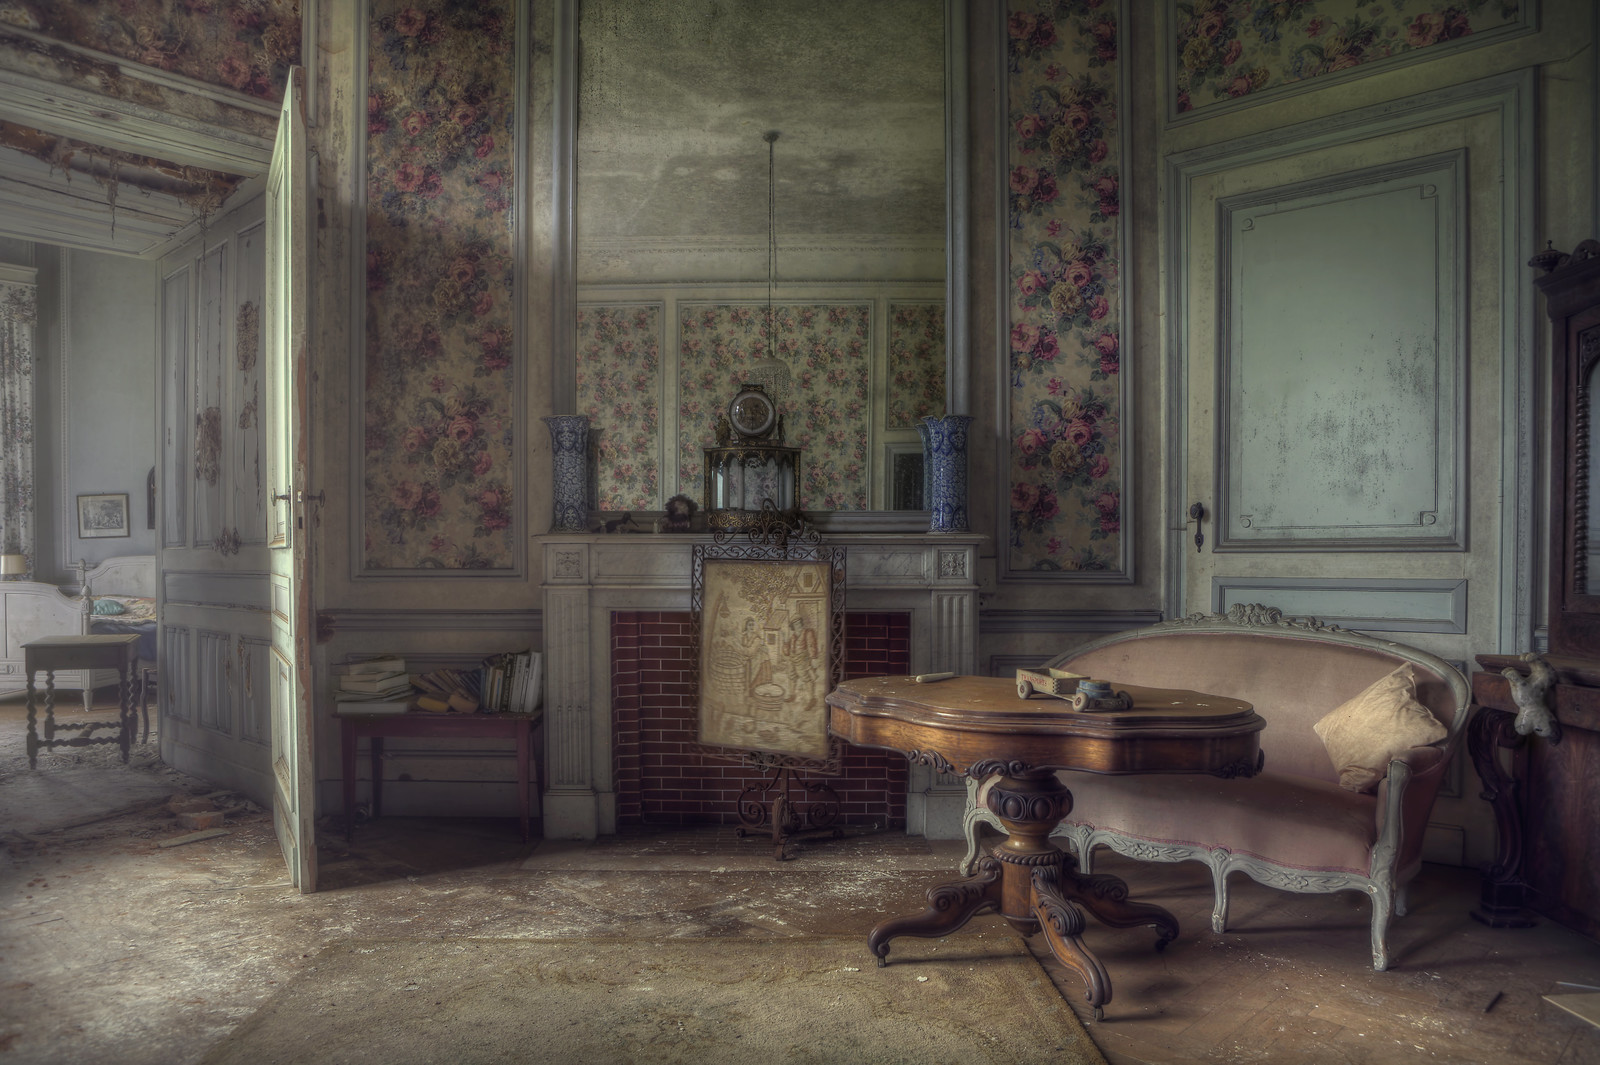 Photo by Andre Govia.